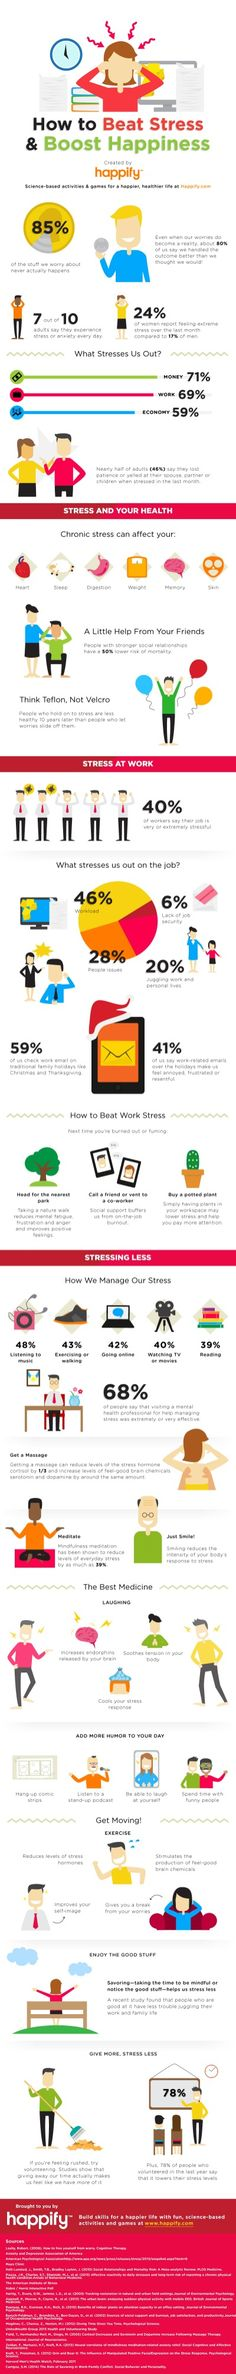 Turn Stress Into Happiness!